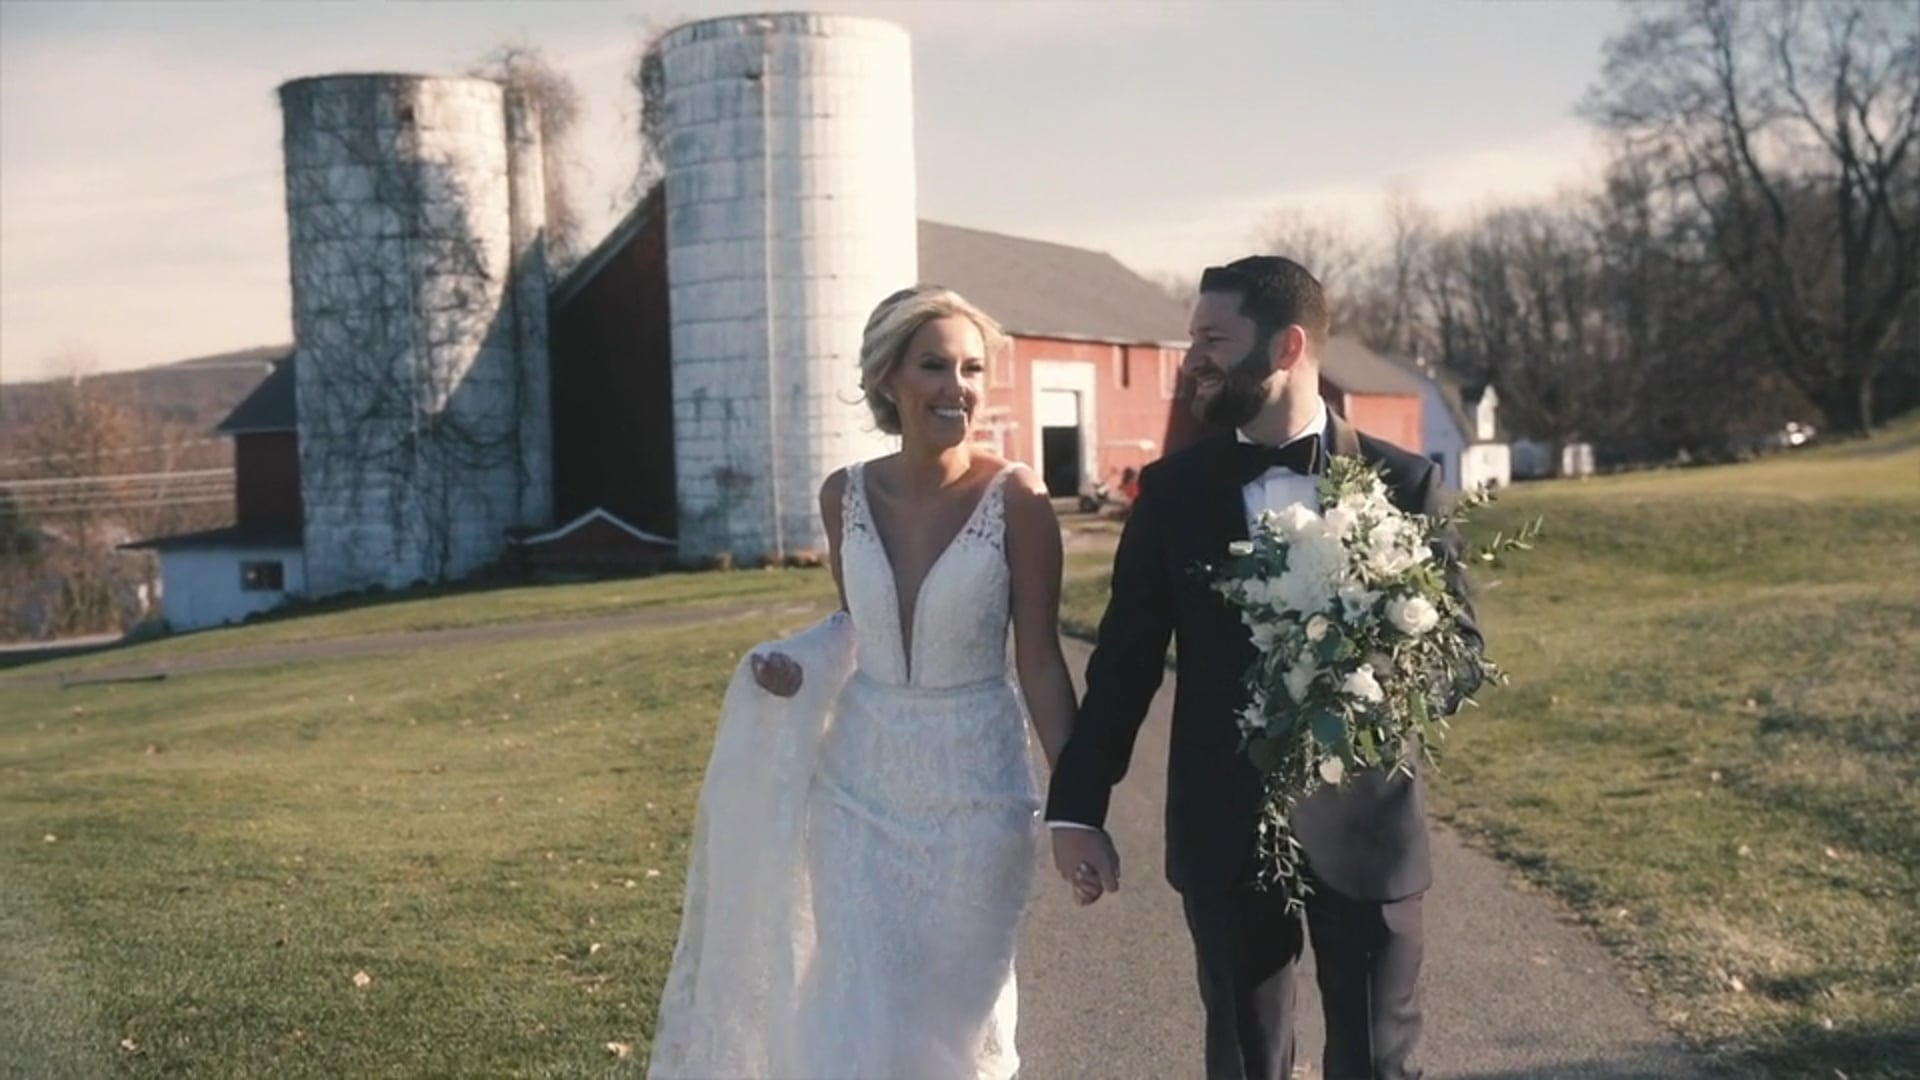 Hand in Hand into the Sunset | Nikki & Jeff